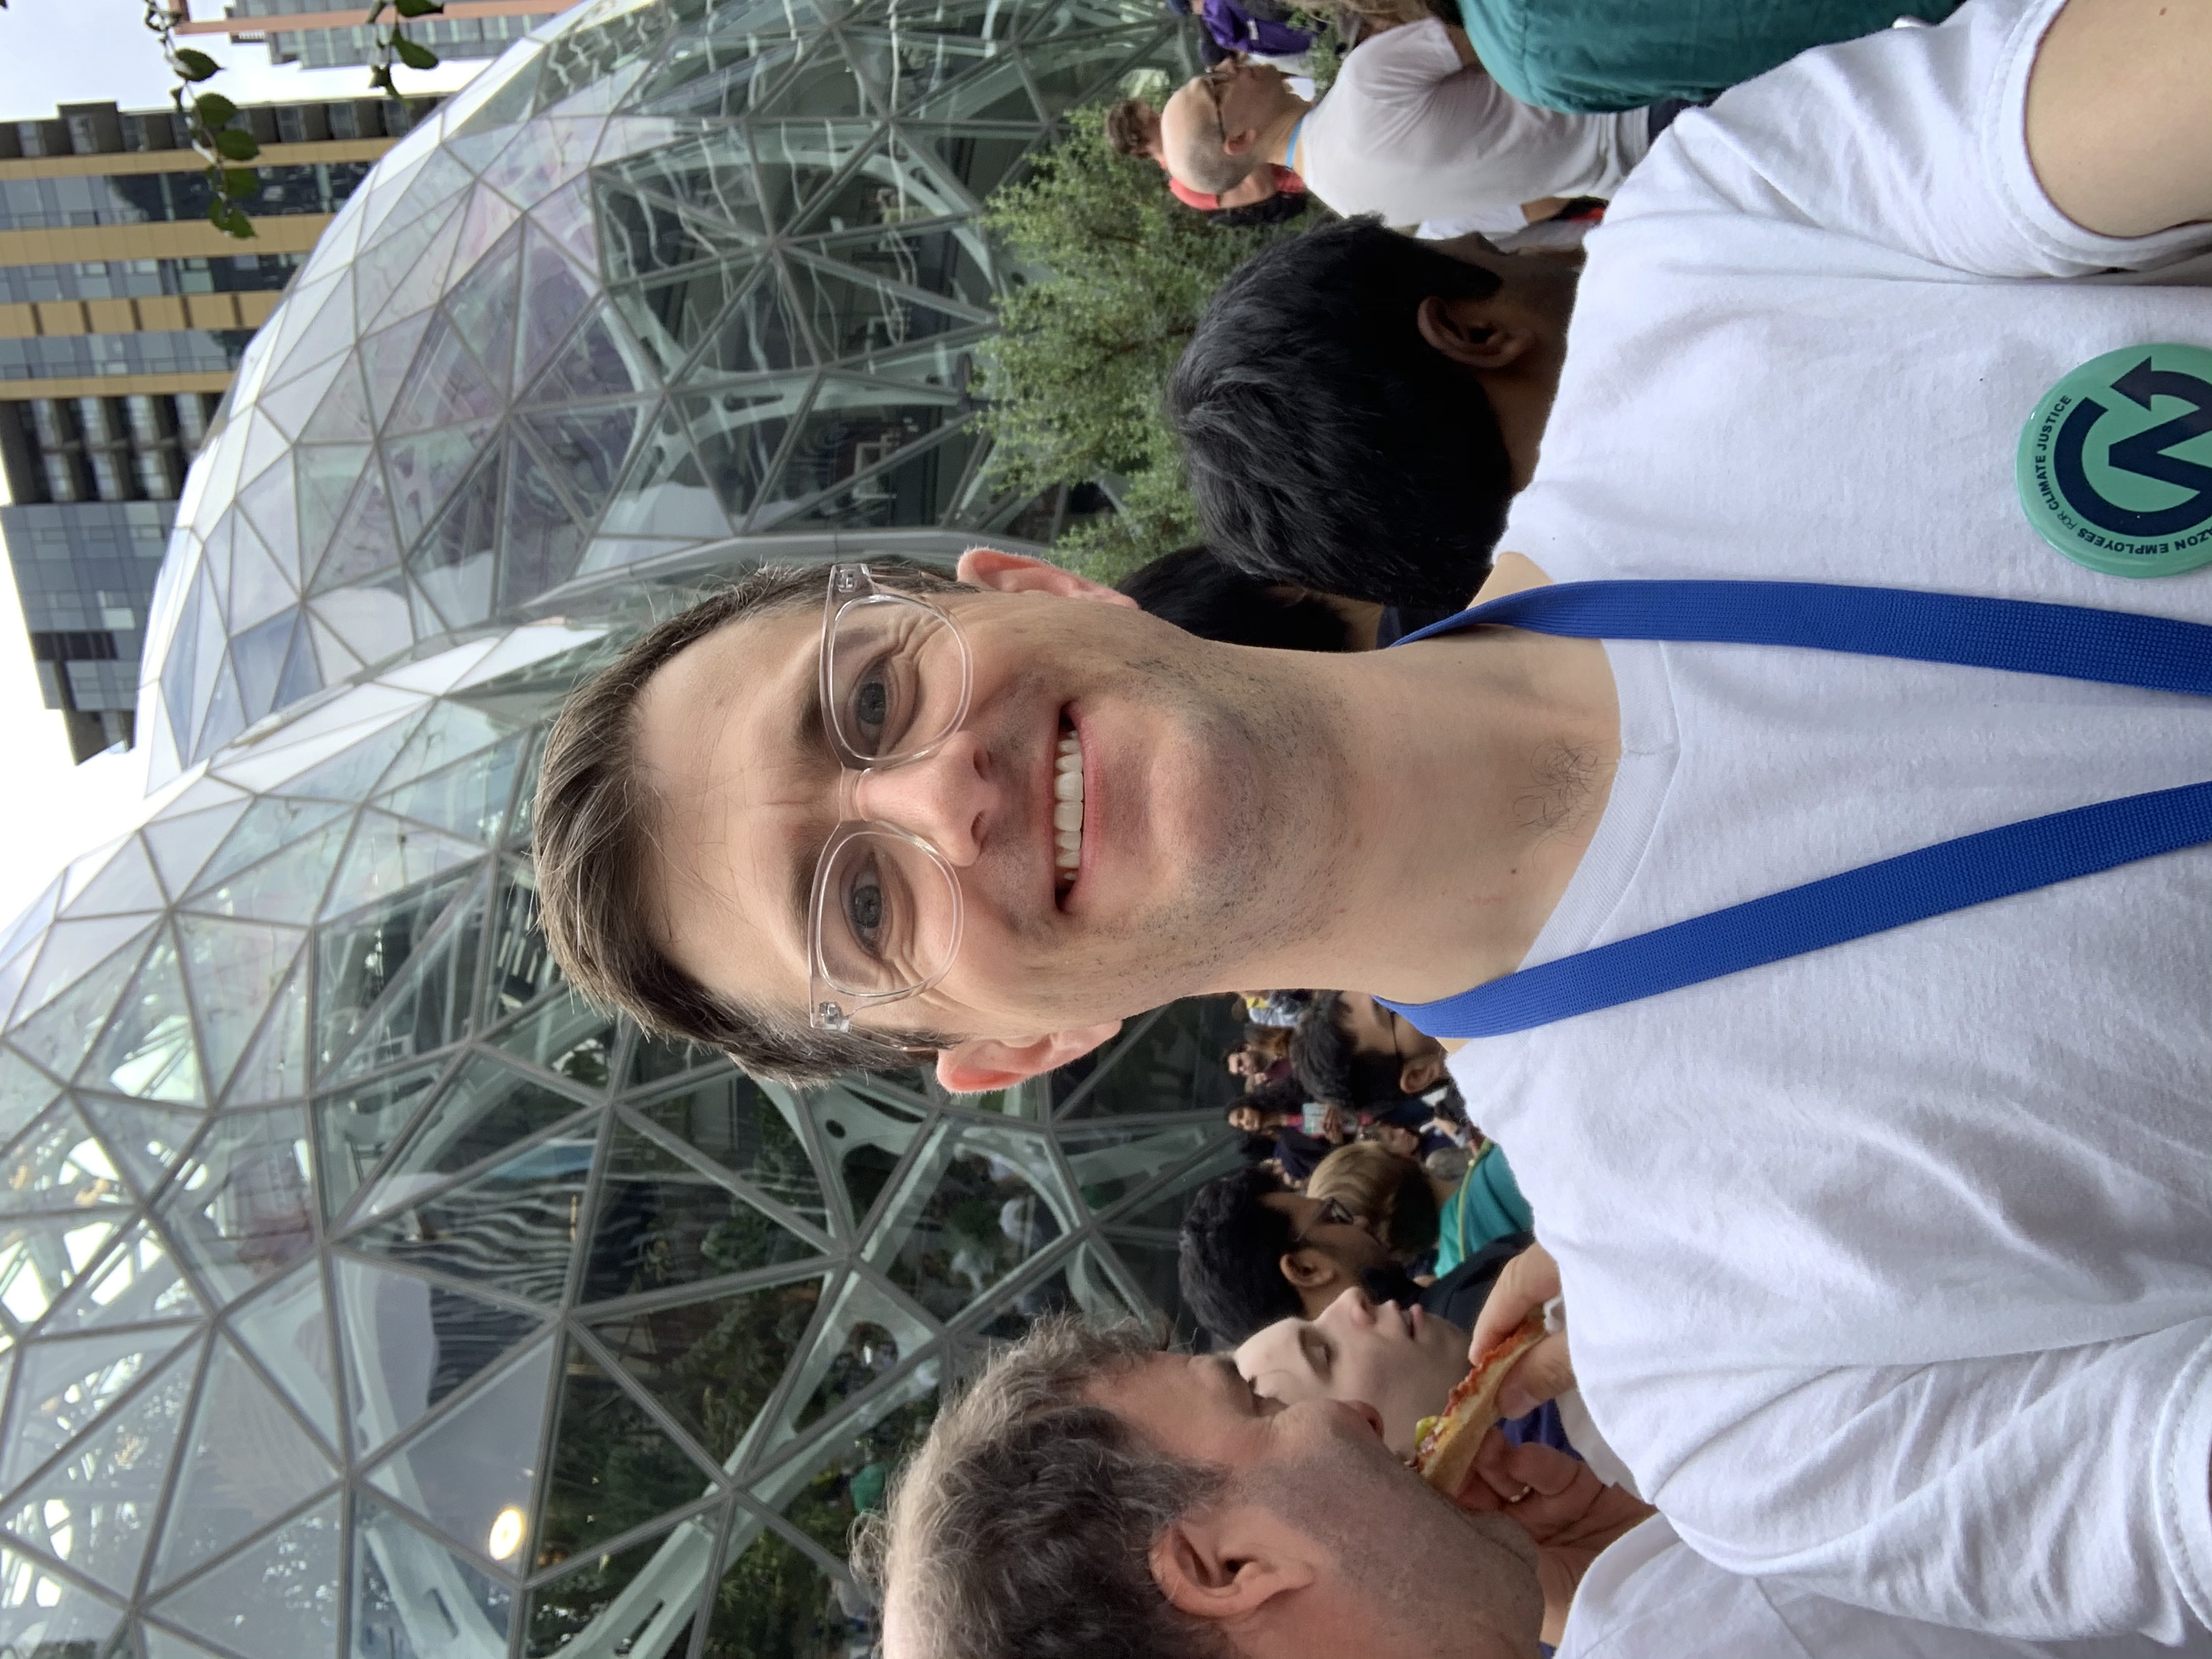 Selfie of Nick in front of The Spheres wearing a white shirt and Amazon Employees for Climate Justice button